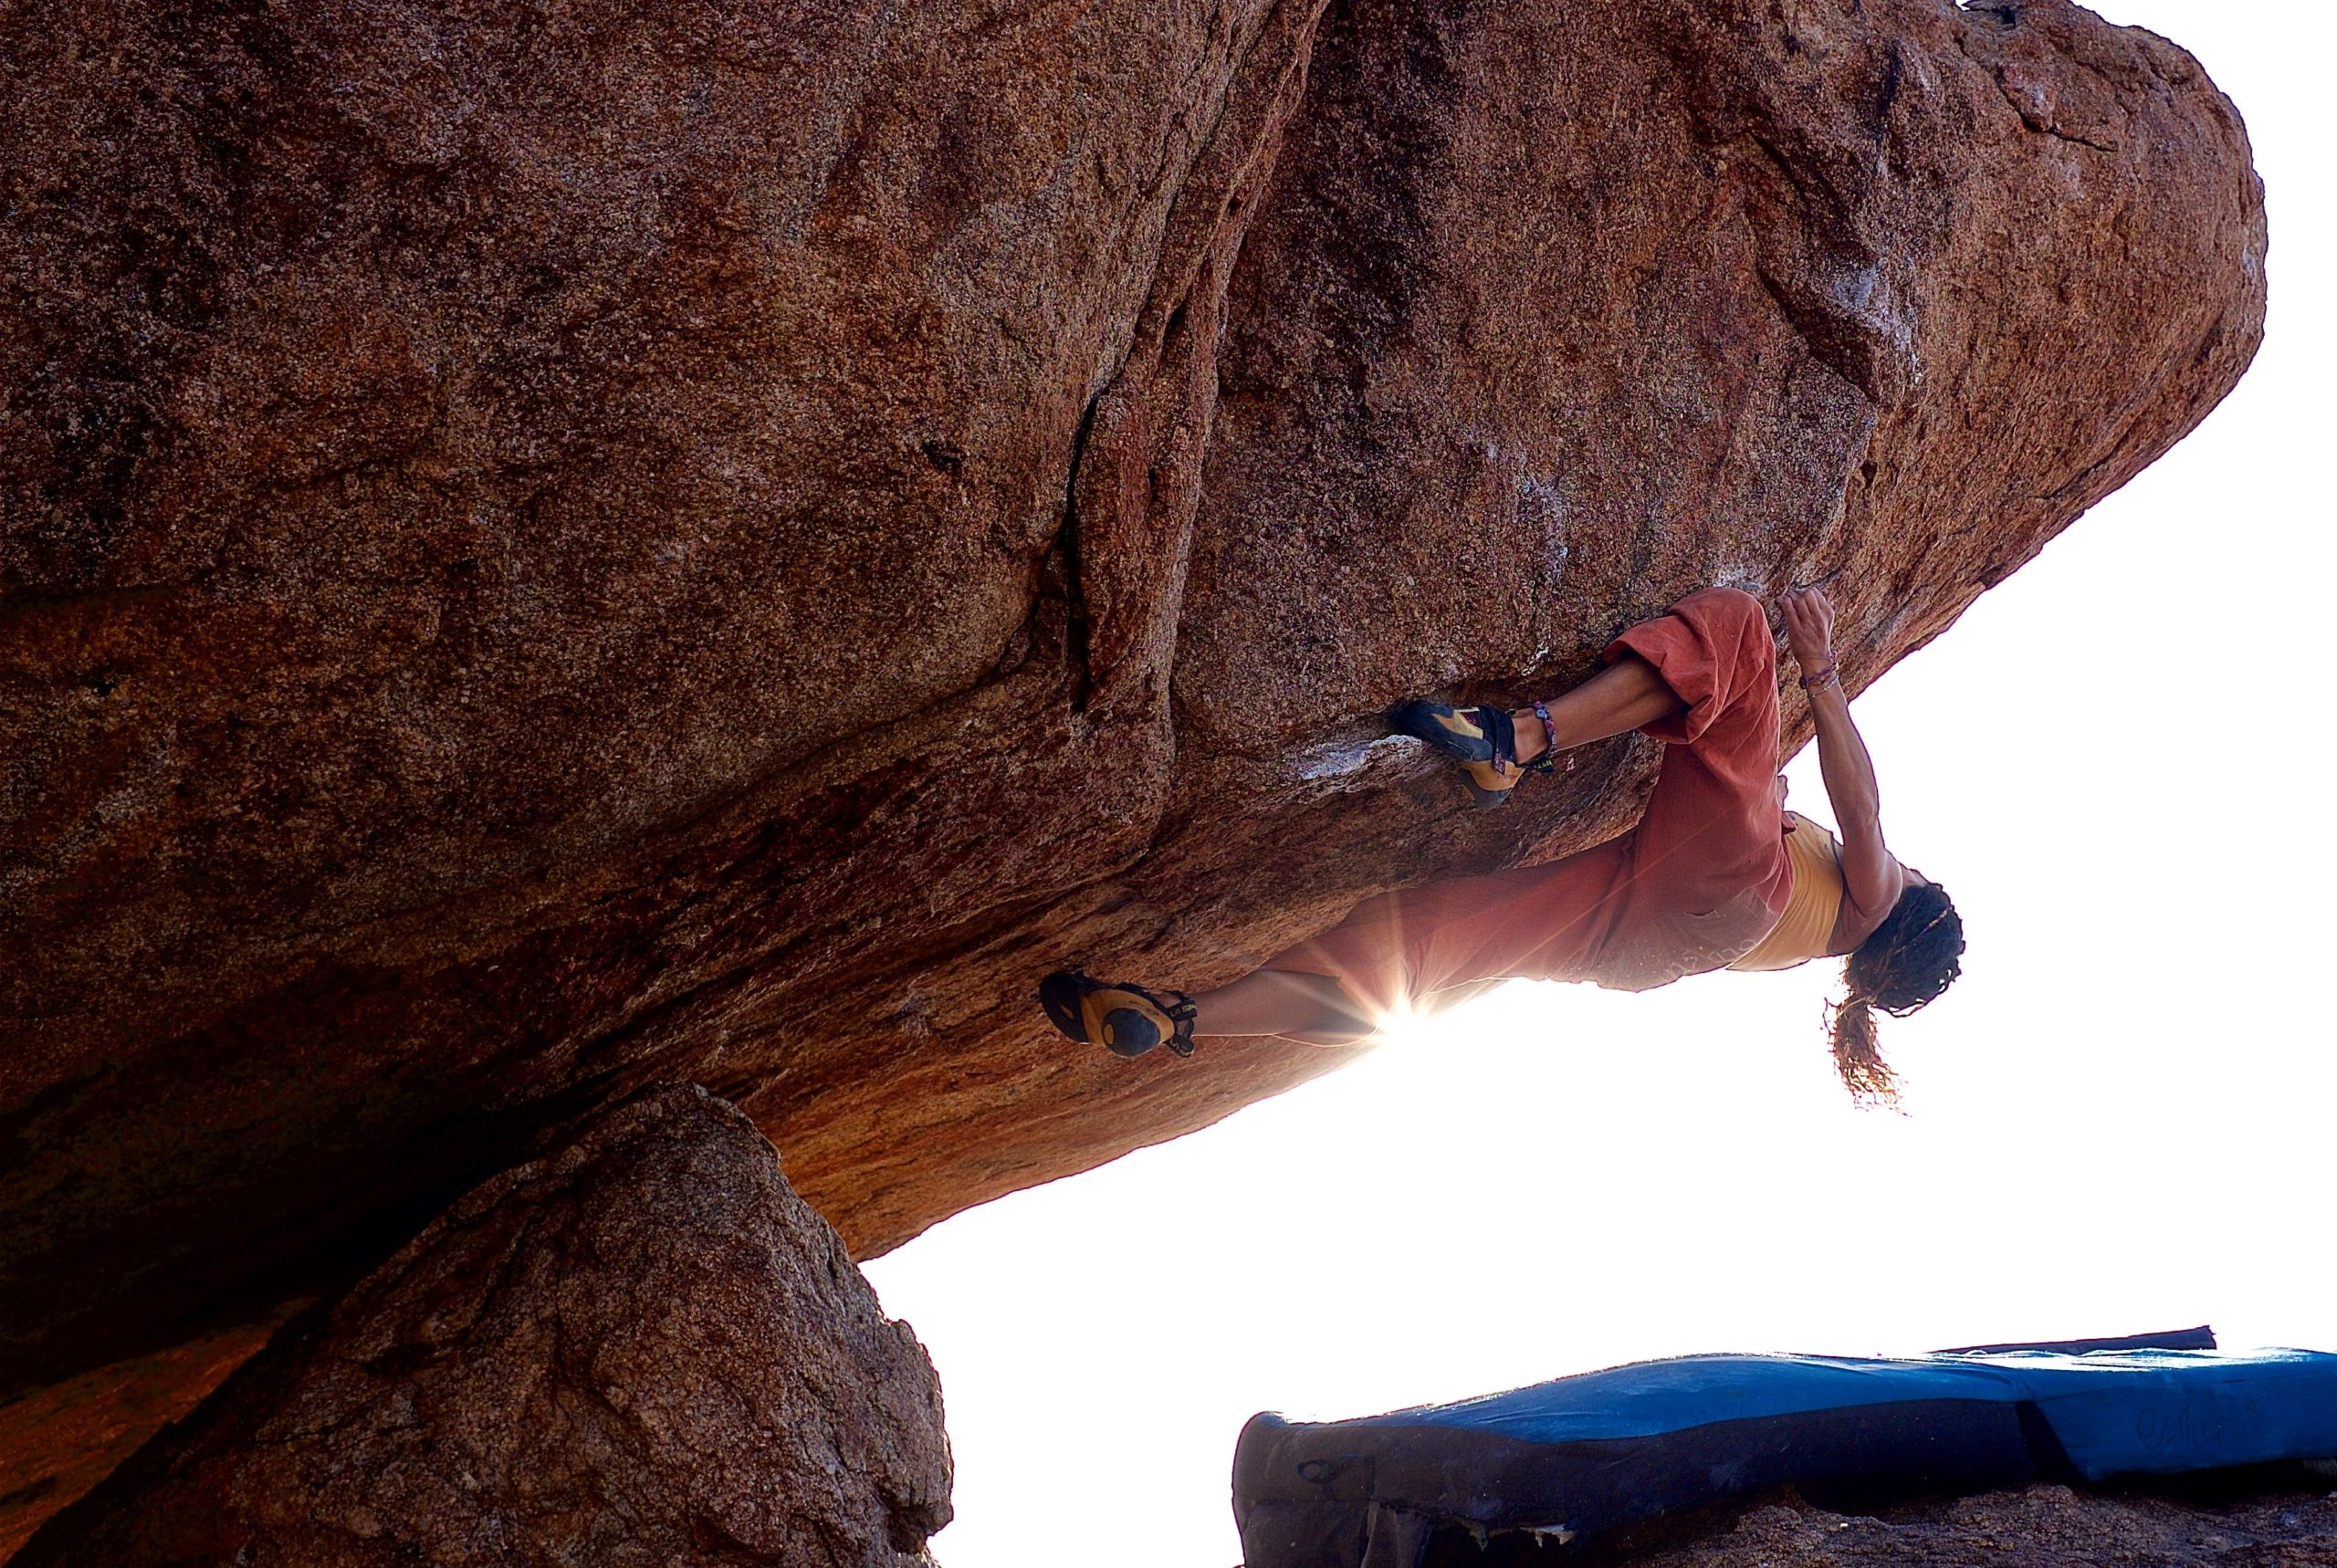 A woman bouldering outdoors